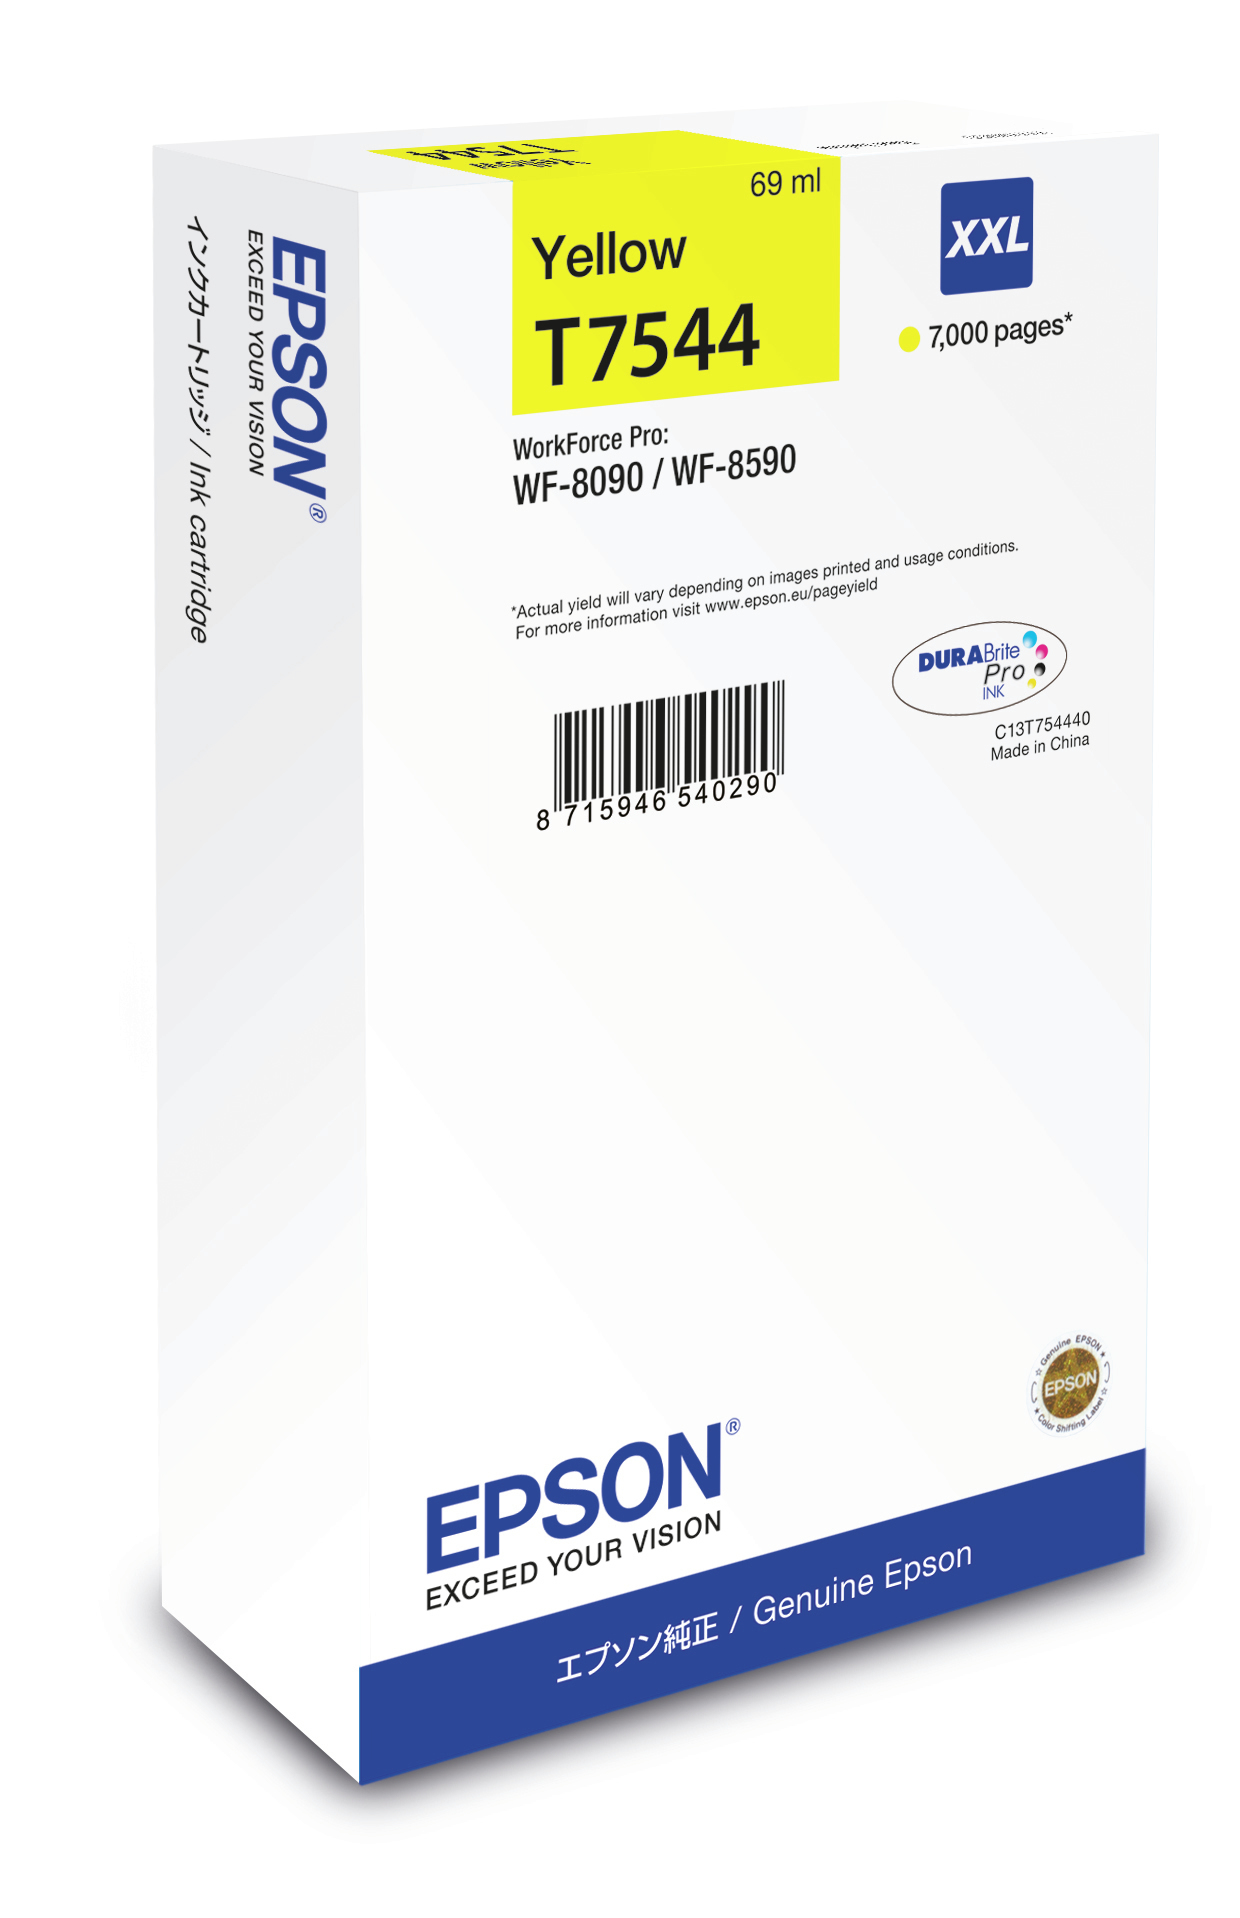 Epson WF-8090 / WF-8590 Ink Cartridge XXL Yellow